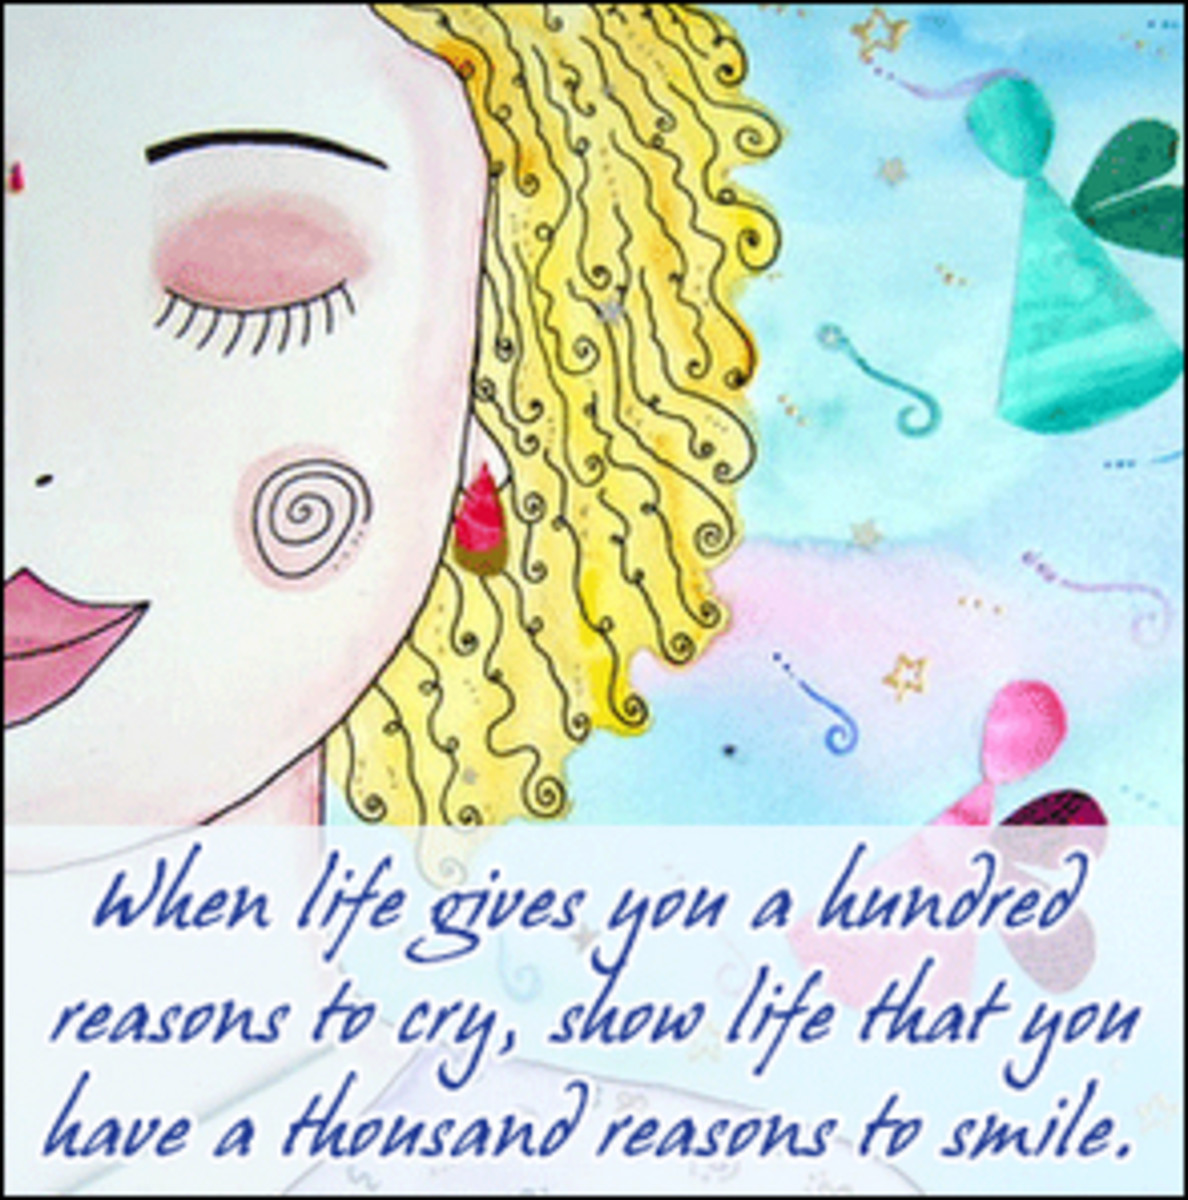 When Life Gives you 100 reasons to cry, show that you have a 100 reasons to smile